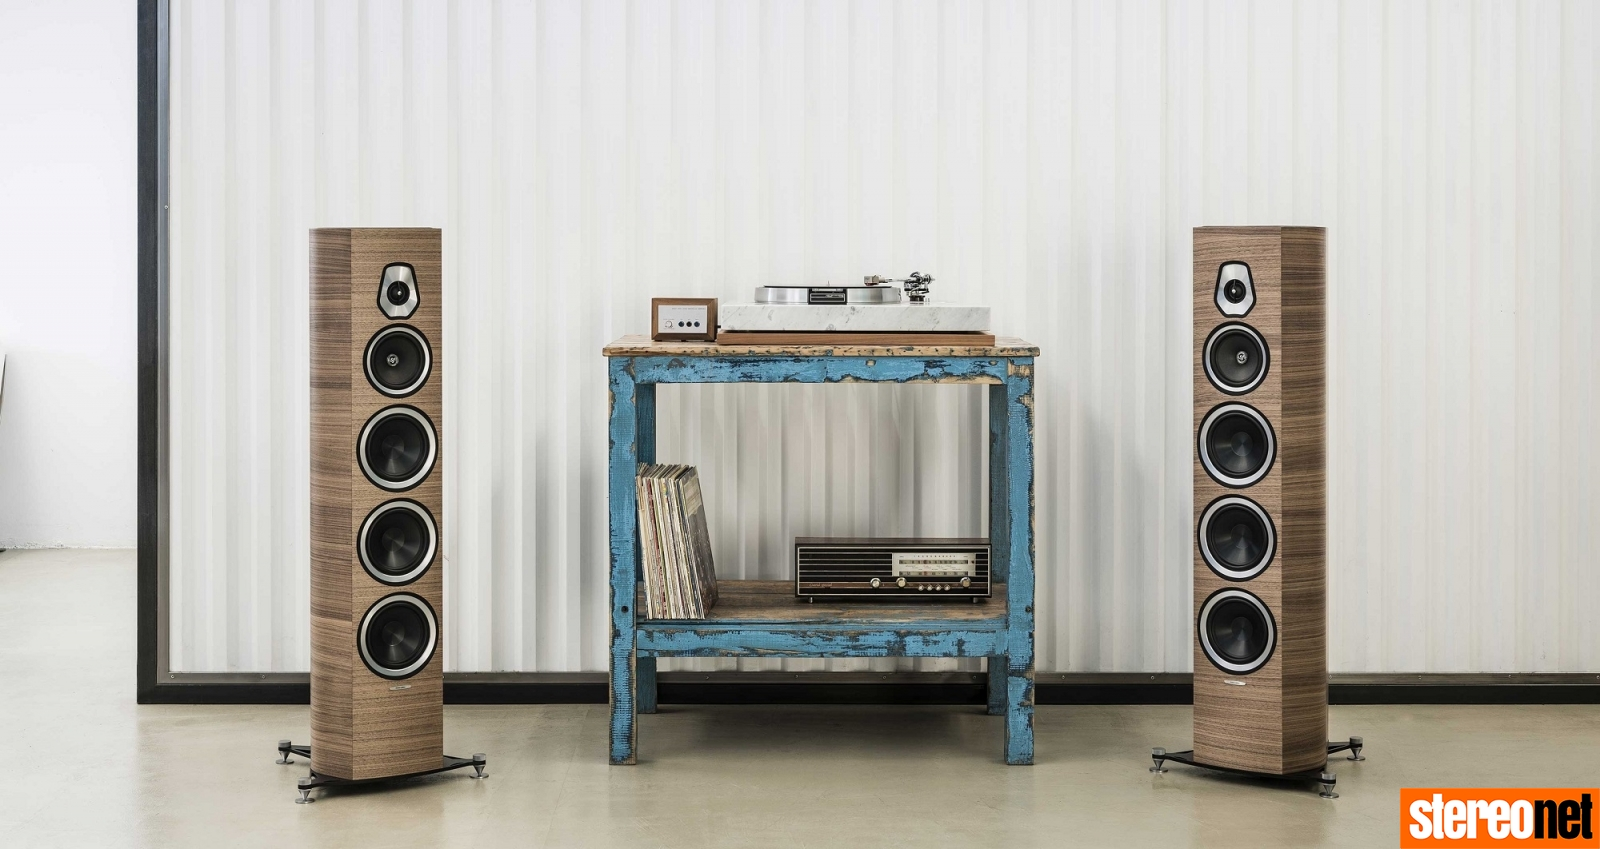 Sonus faber Distribution Moves to Fine Sounds UK